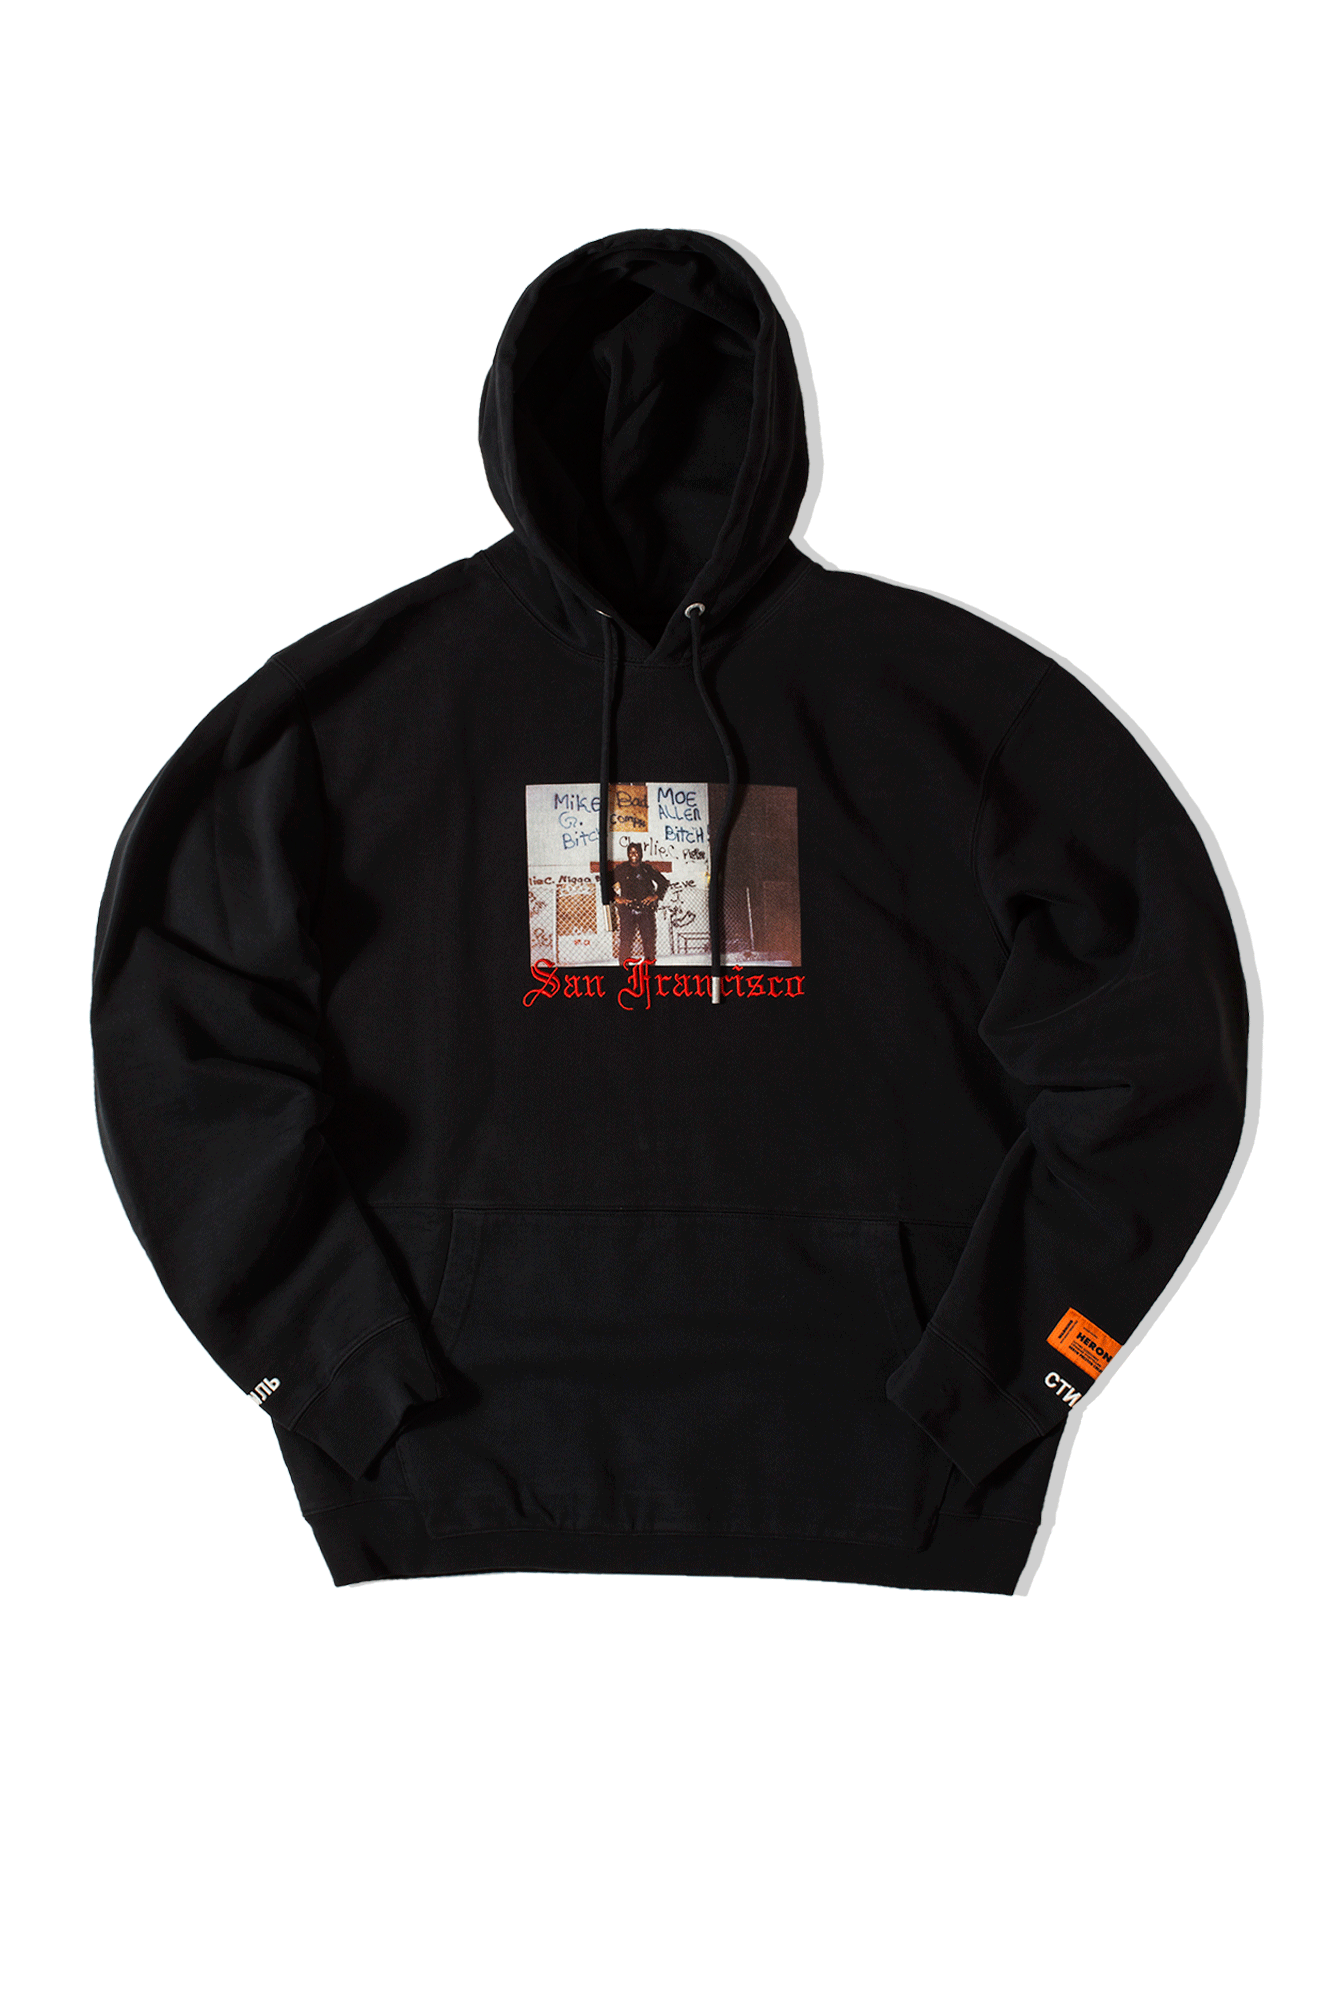 Heron Preston Felpe Cuts Heron dad Hoodie Nero 8090281088#Cotton#BLK#M - One Block Down